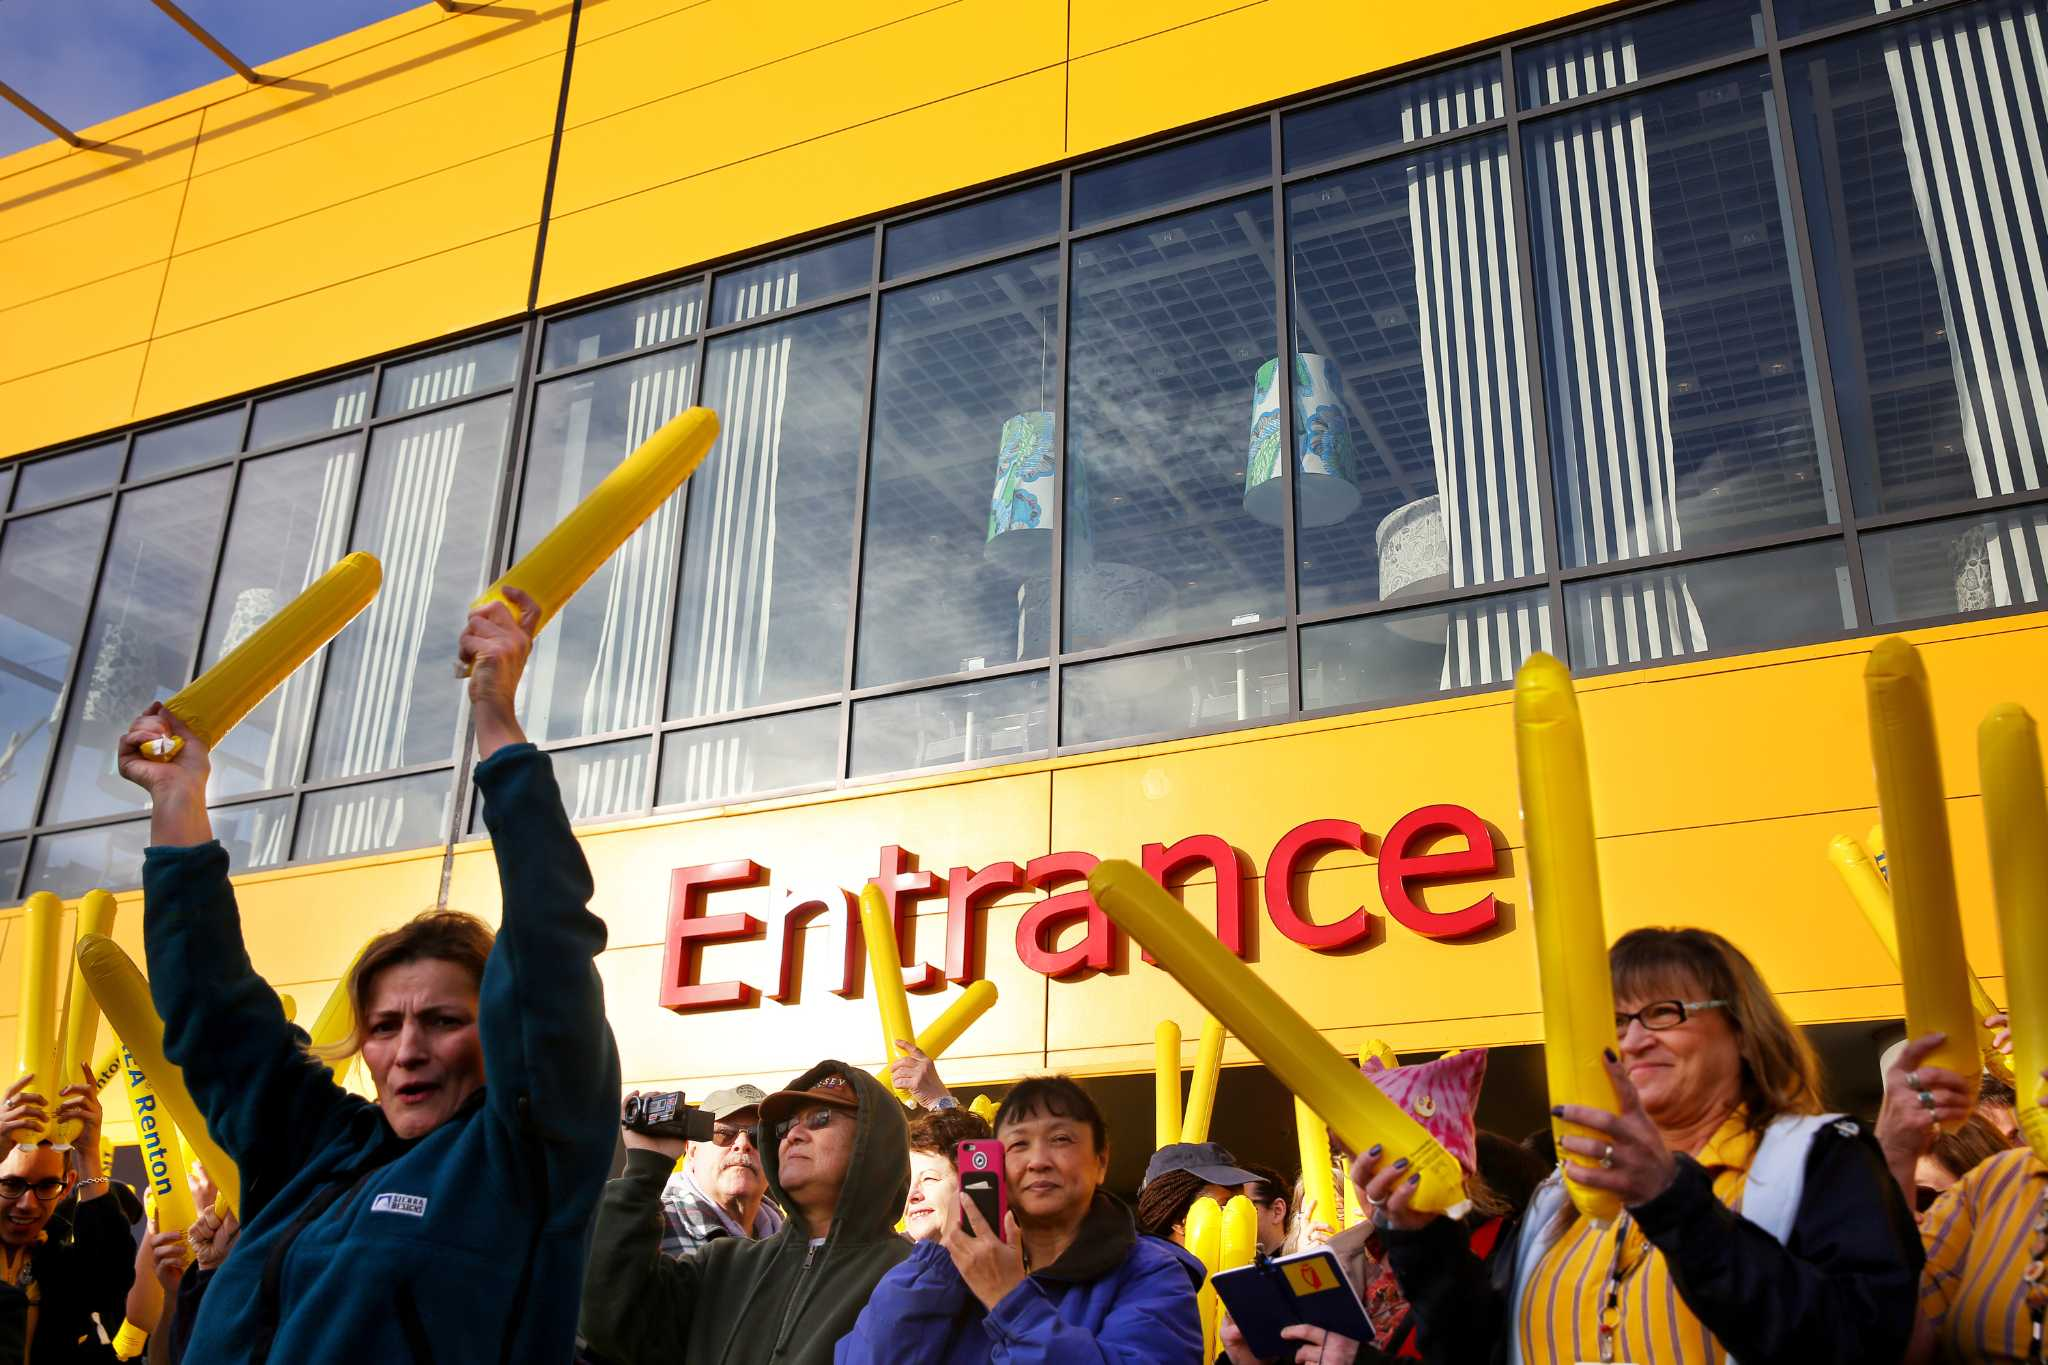 New ikea store opens in renton for Ikea renton washington